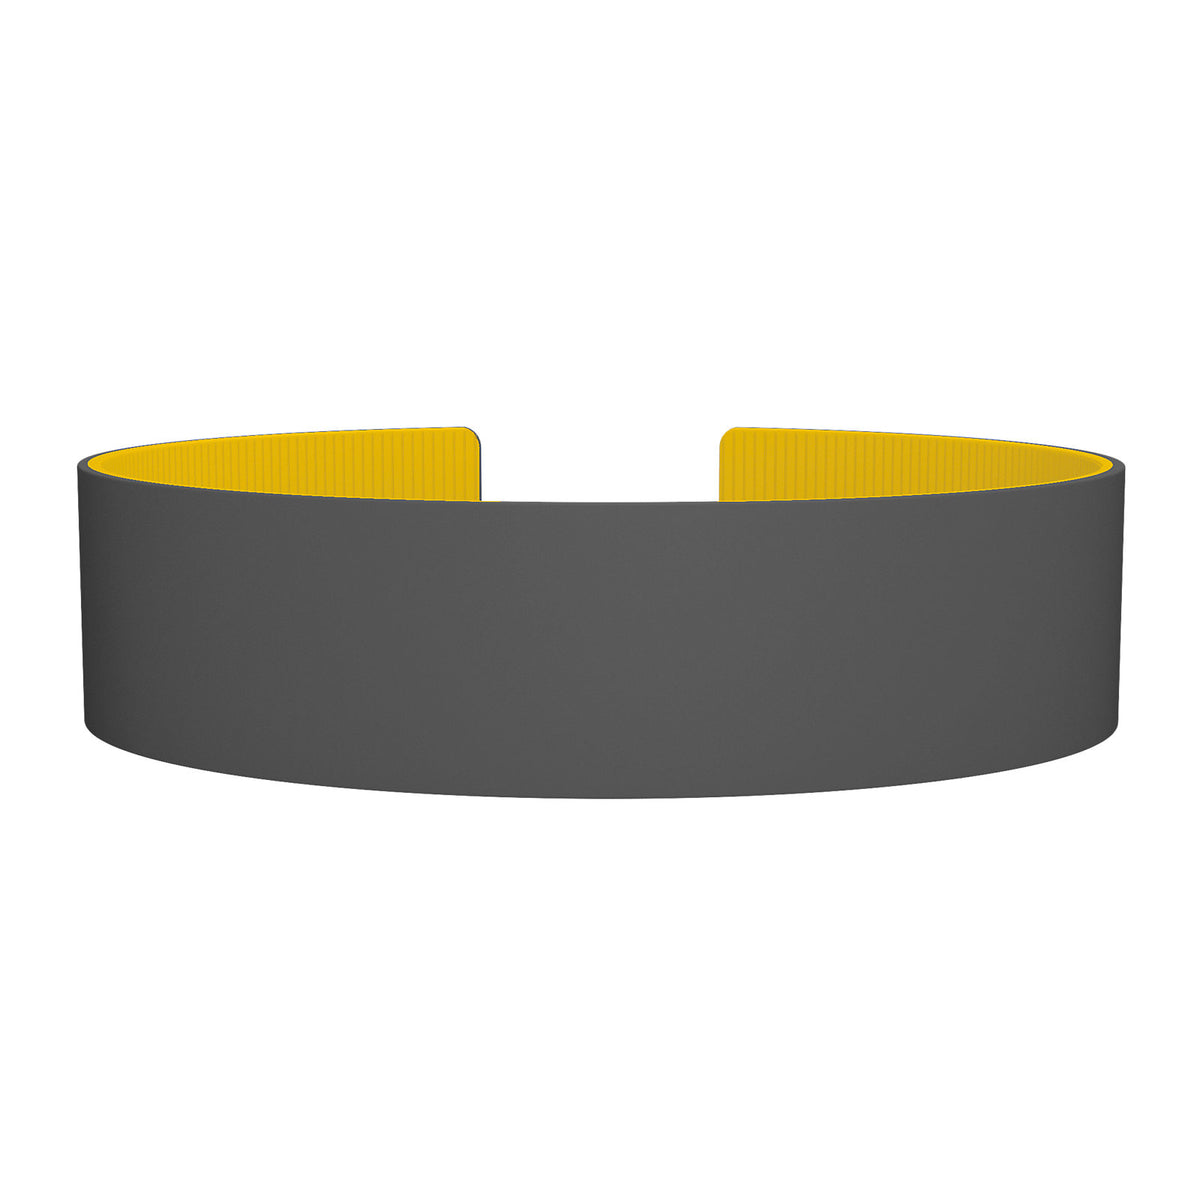 ROAD iD Replacement Band 19mm Gray/Banana Silicone Clasp